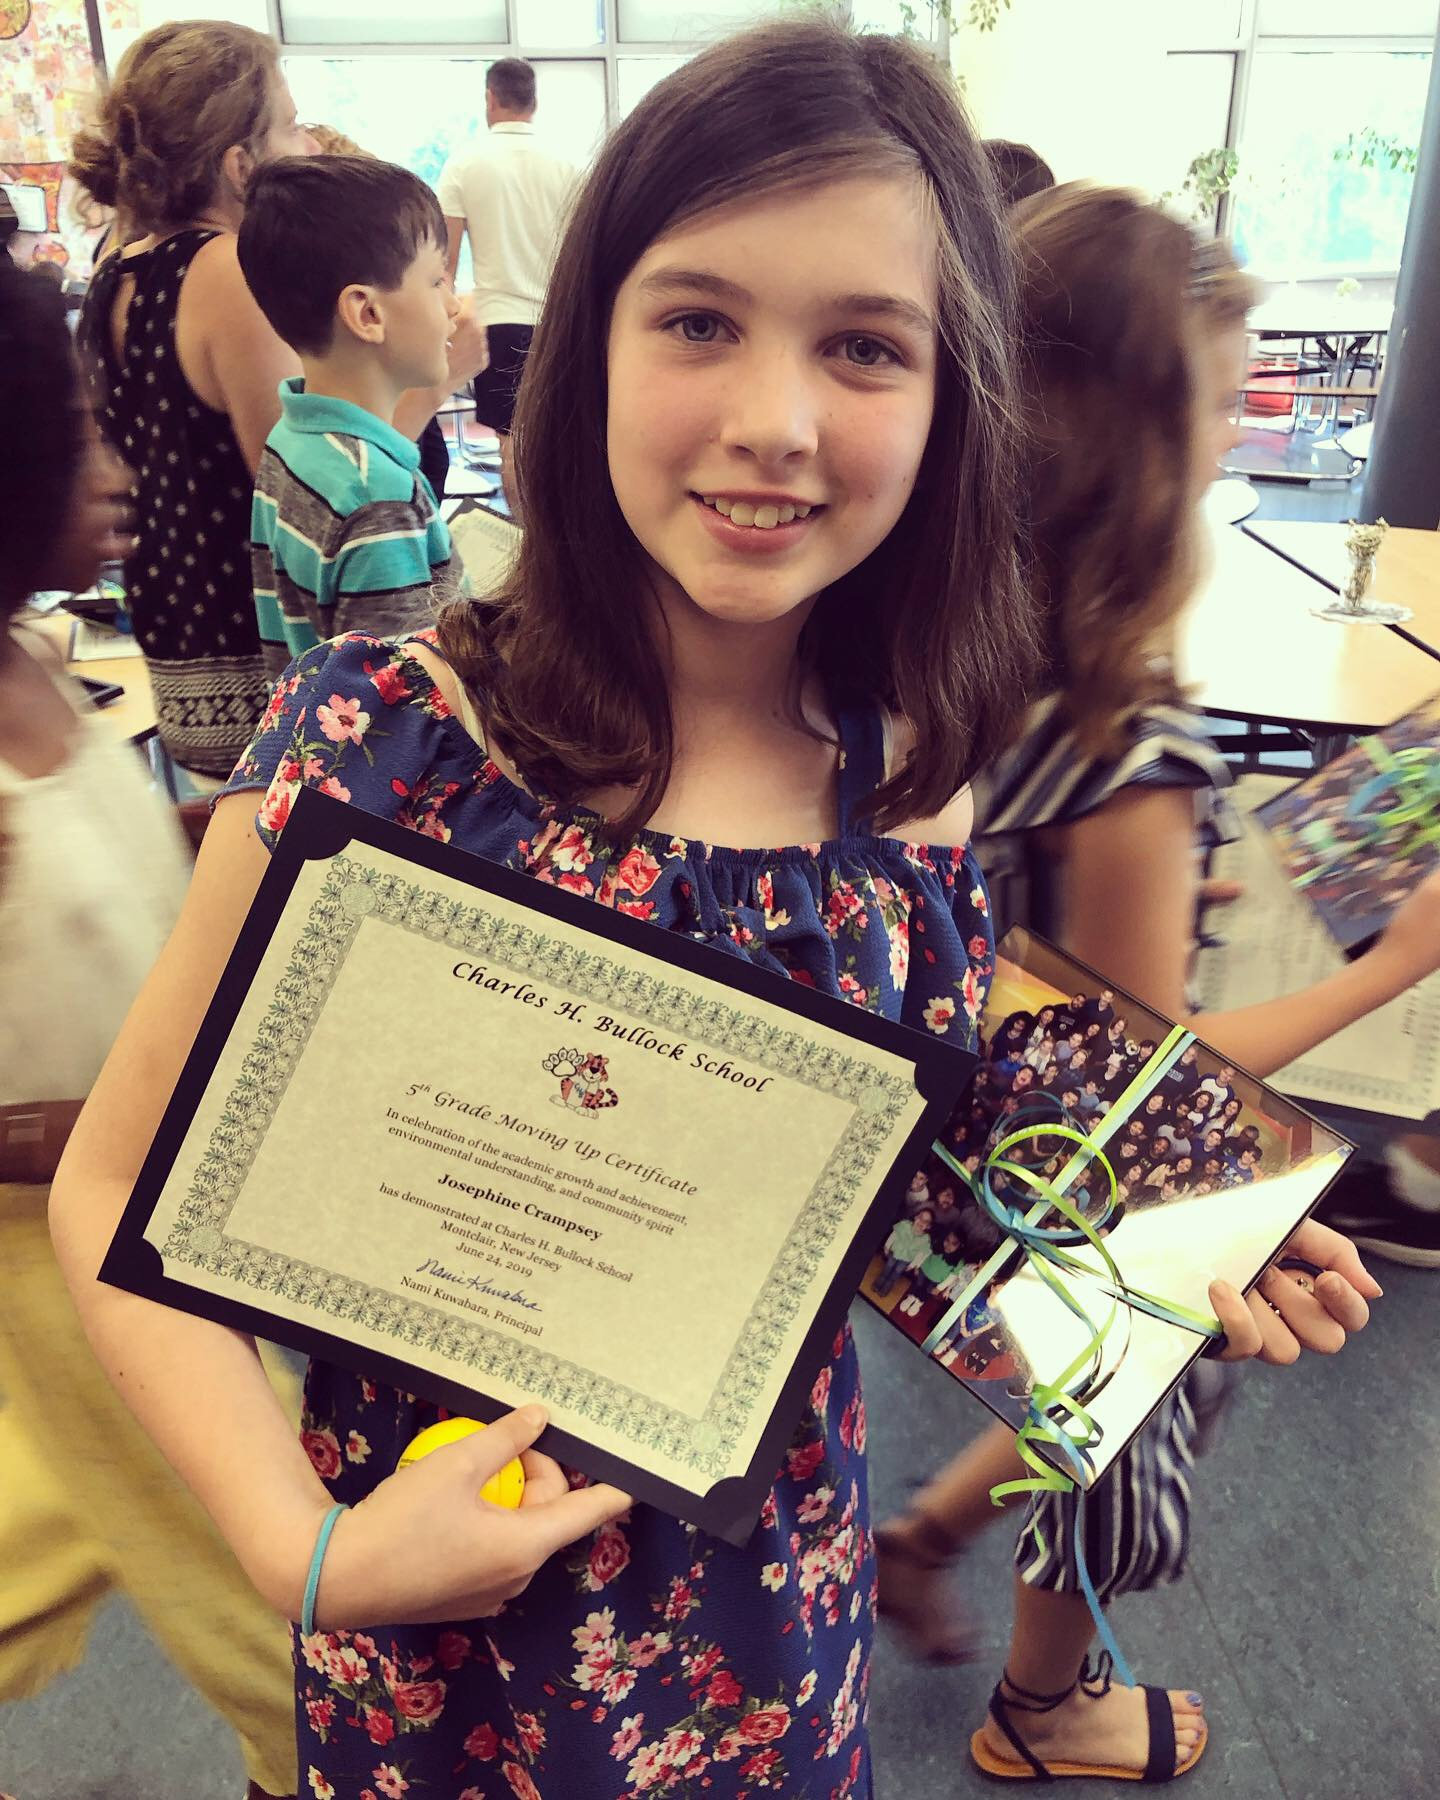 A very big week for Josie - Monday was her 'Moving Up' ceremony marking the end of 5th grade and the beginning of middle school!!!